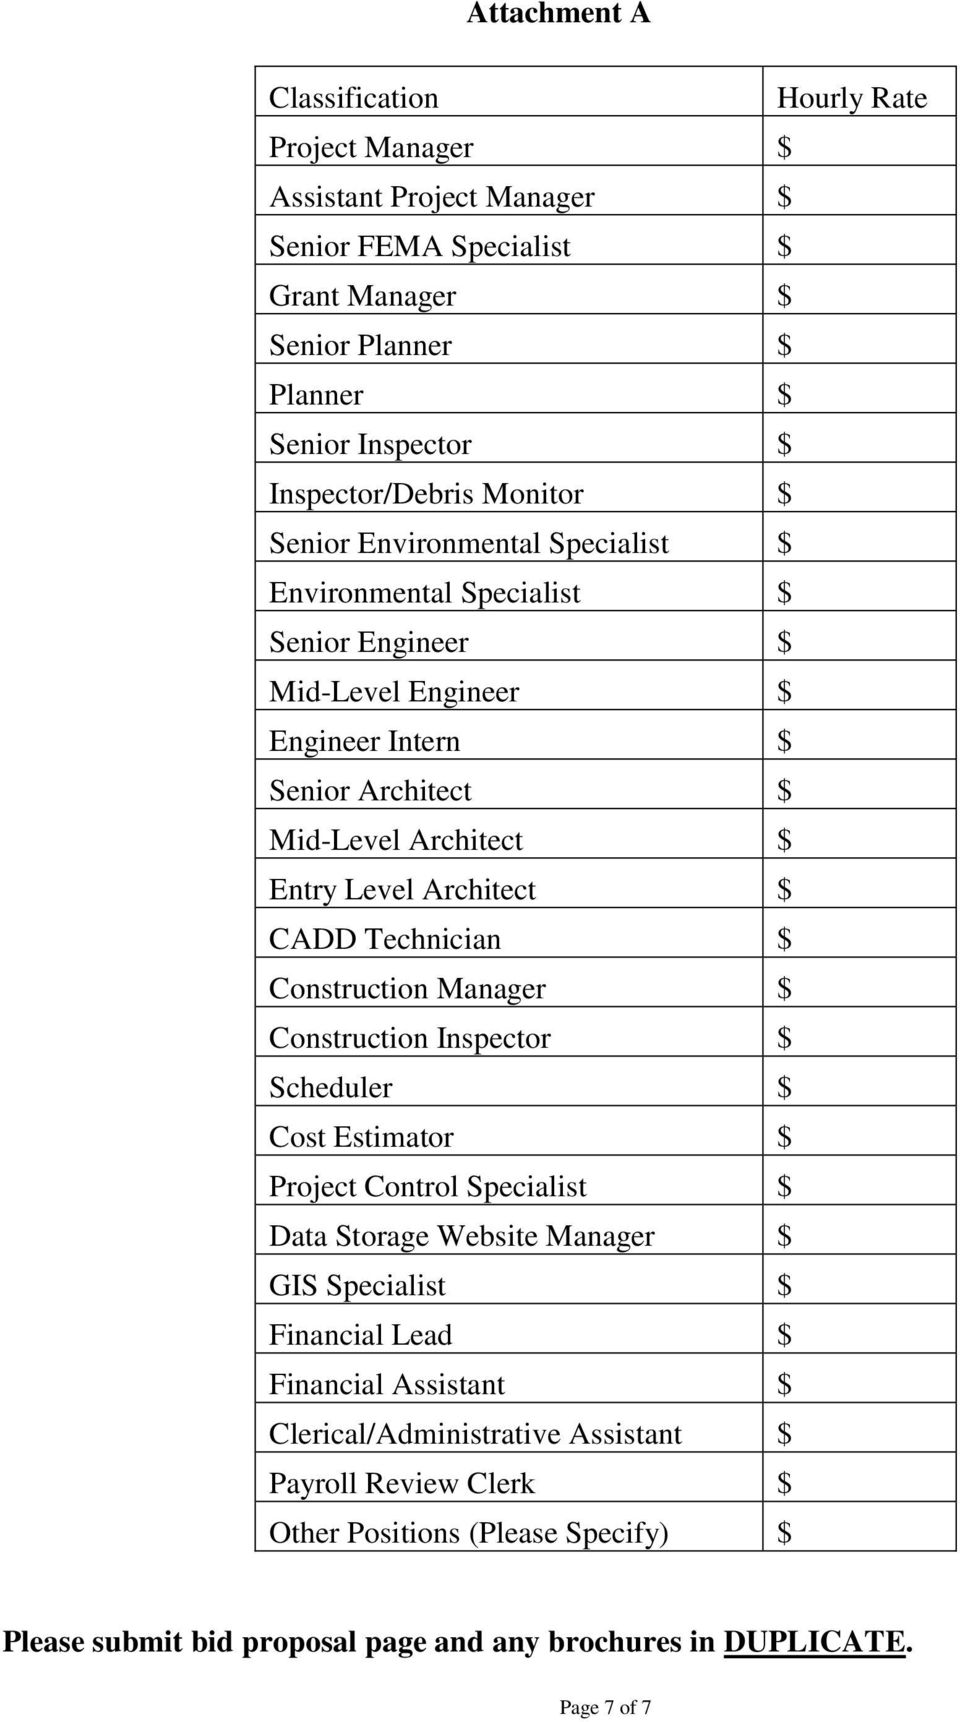 $ CADD Technician $ Construction Manager $ Construction Inspector $ Scheduler $ Cost Estimator $ Project Control Specialist $ Data Storage Website Manager $ GIS Specialist $ Financial Lead $